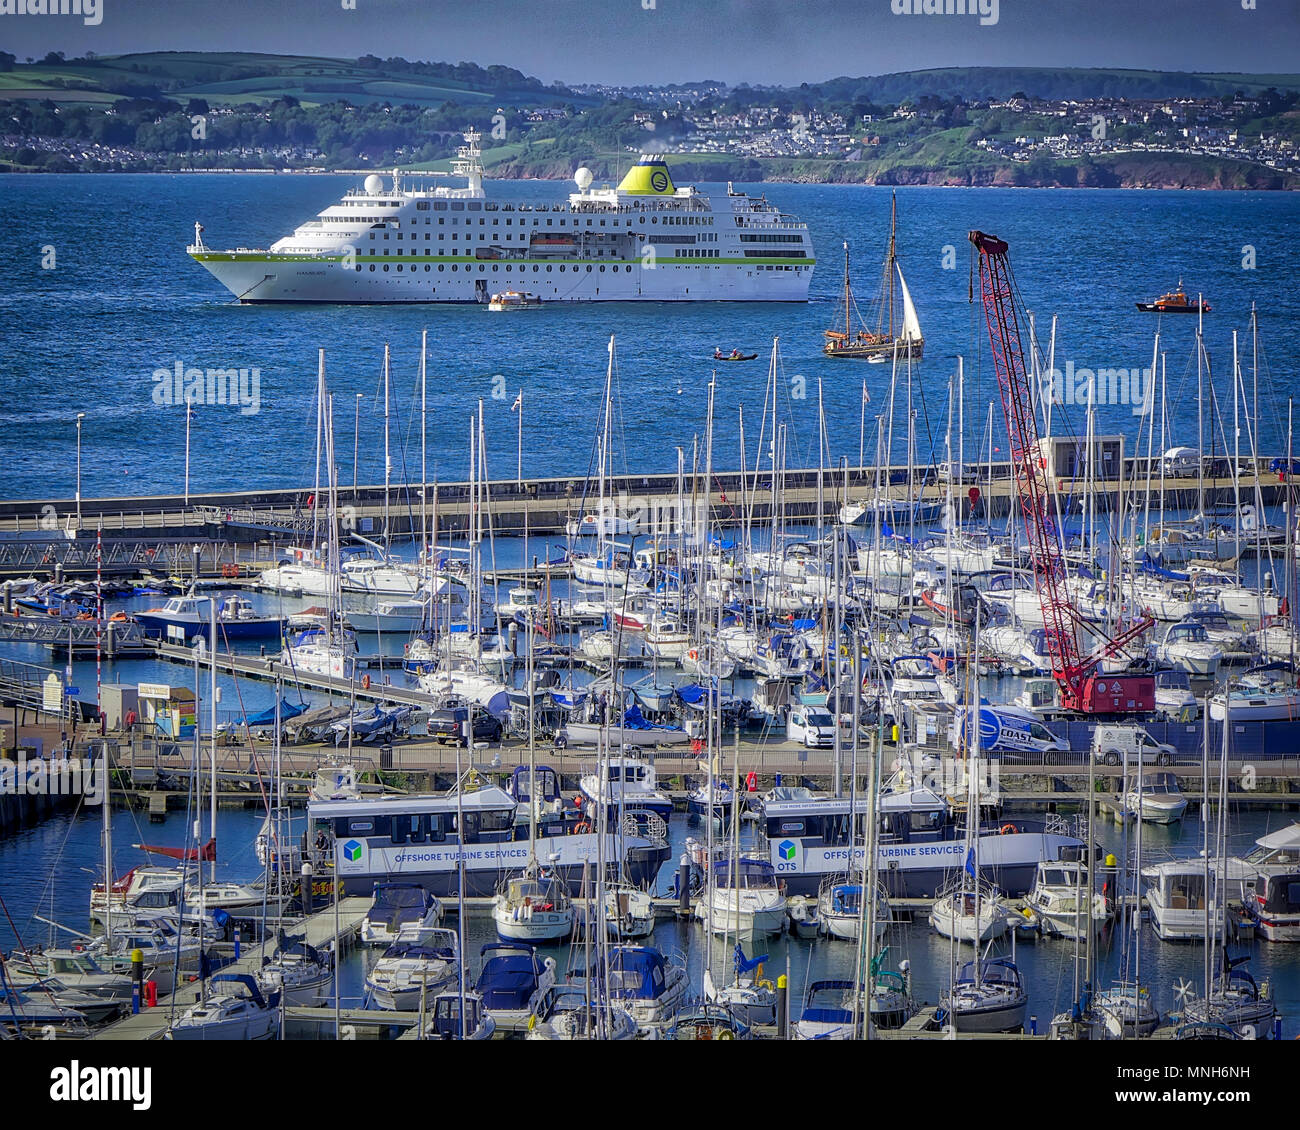 Torbay, UK . 17th May 2018. GB - DEVON: MS Hamburg arrival in Torbay with Torquay harbour in foreground. MS Hamburg is a 15,000-ton, 420 passenger, luxury cruise ship owned by the Conti Group and is now operated by Plantours Kreuzfahrten. UK 17. May 2018 Credit: nagelestock.com/Alamy Live News - Stock Image